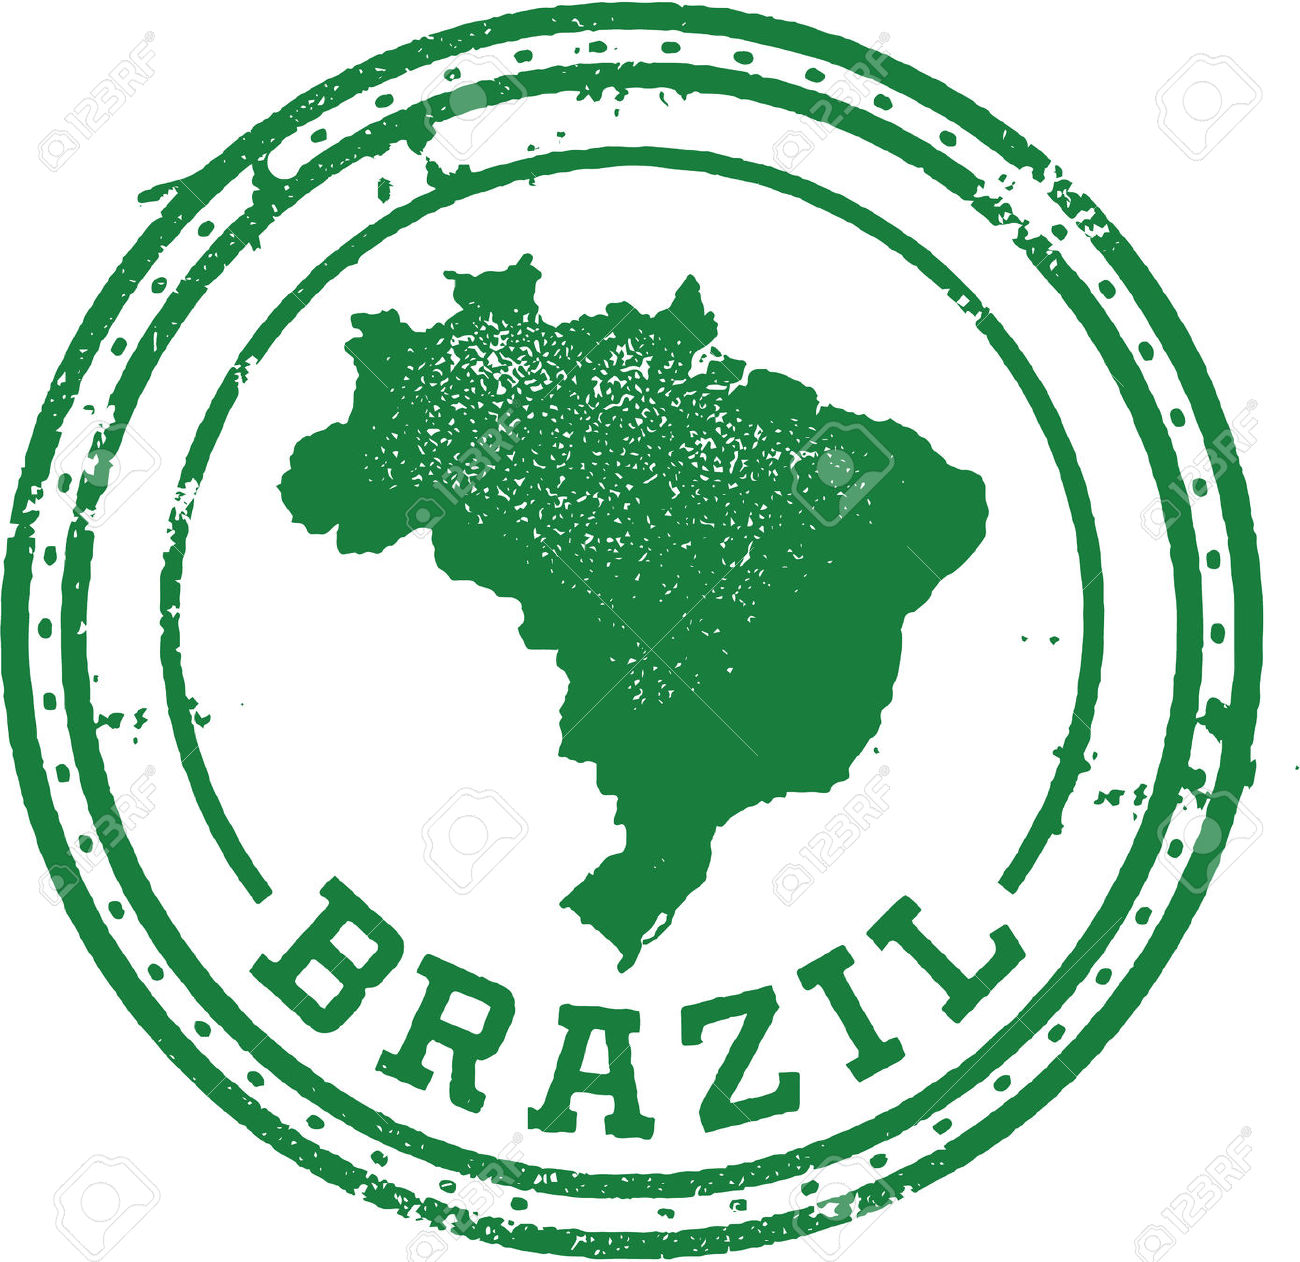 Brazil South American Travel Stamp Royalty Free Cliparts, Vectors.